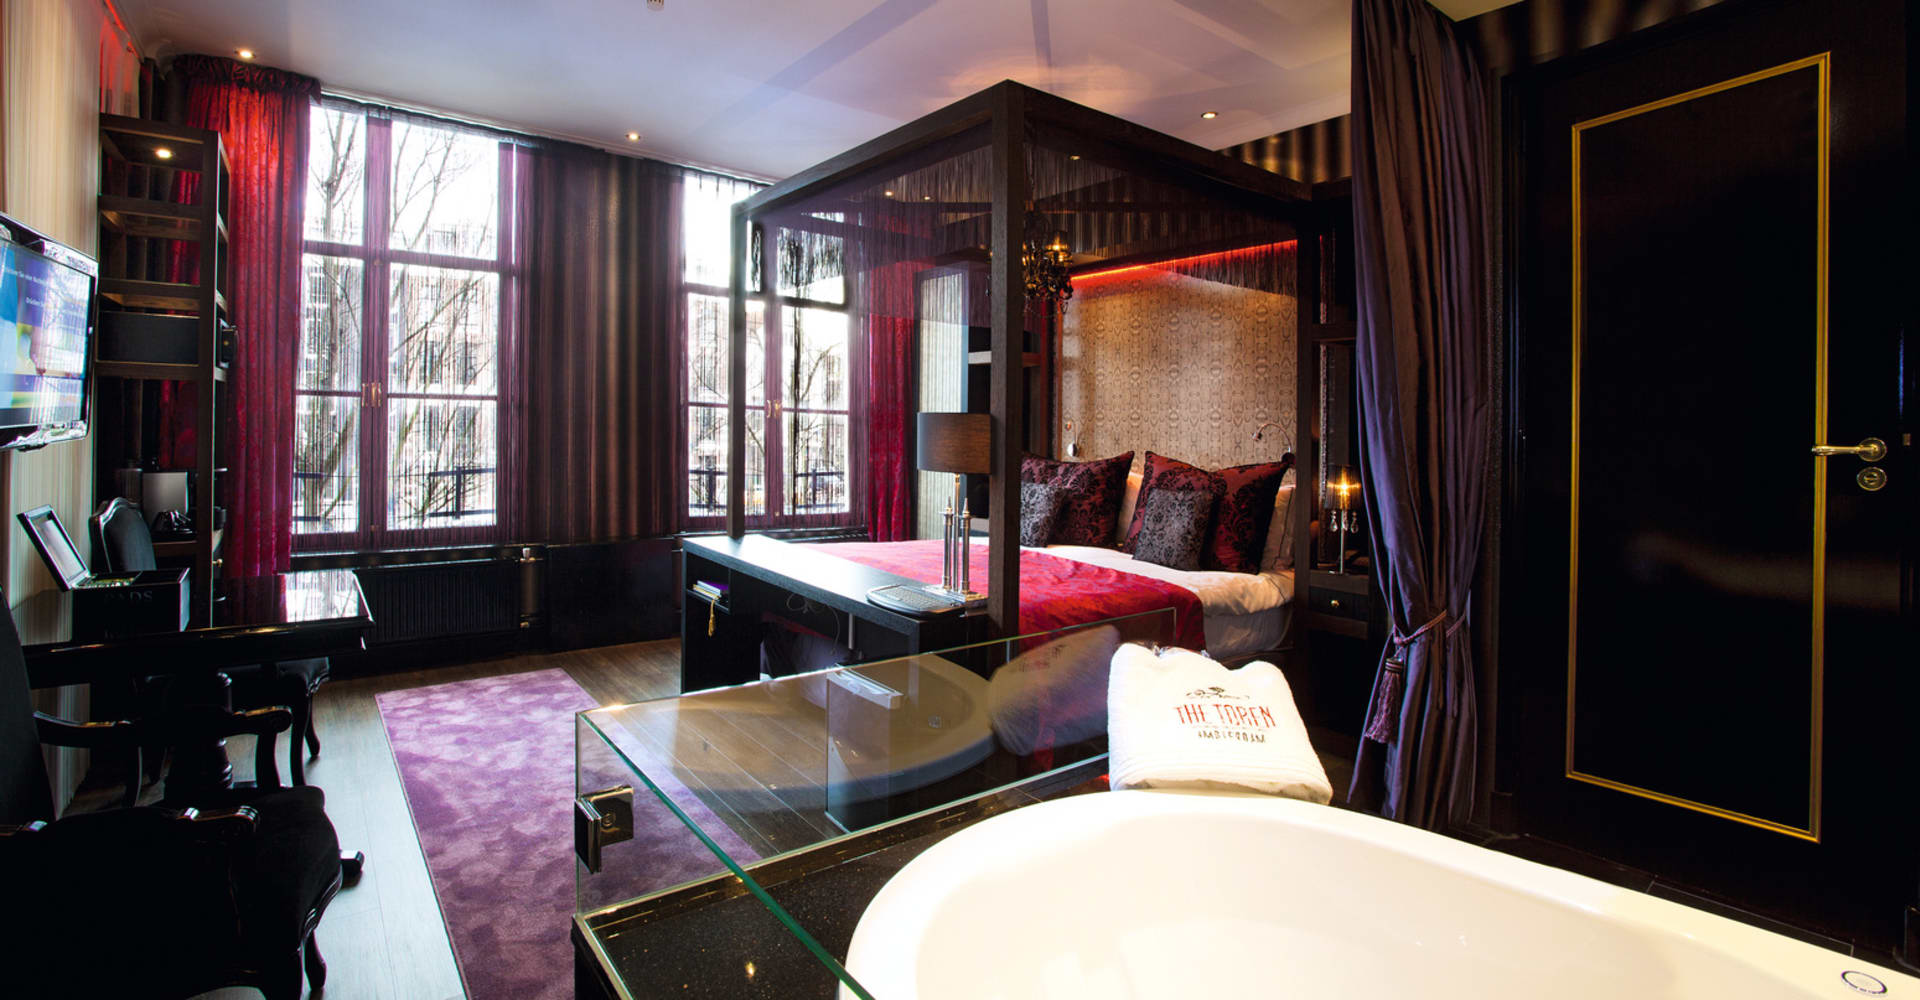 Special deluxe room with canal view - The Toren Amsterdam - By the Pavilions